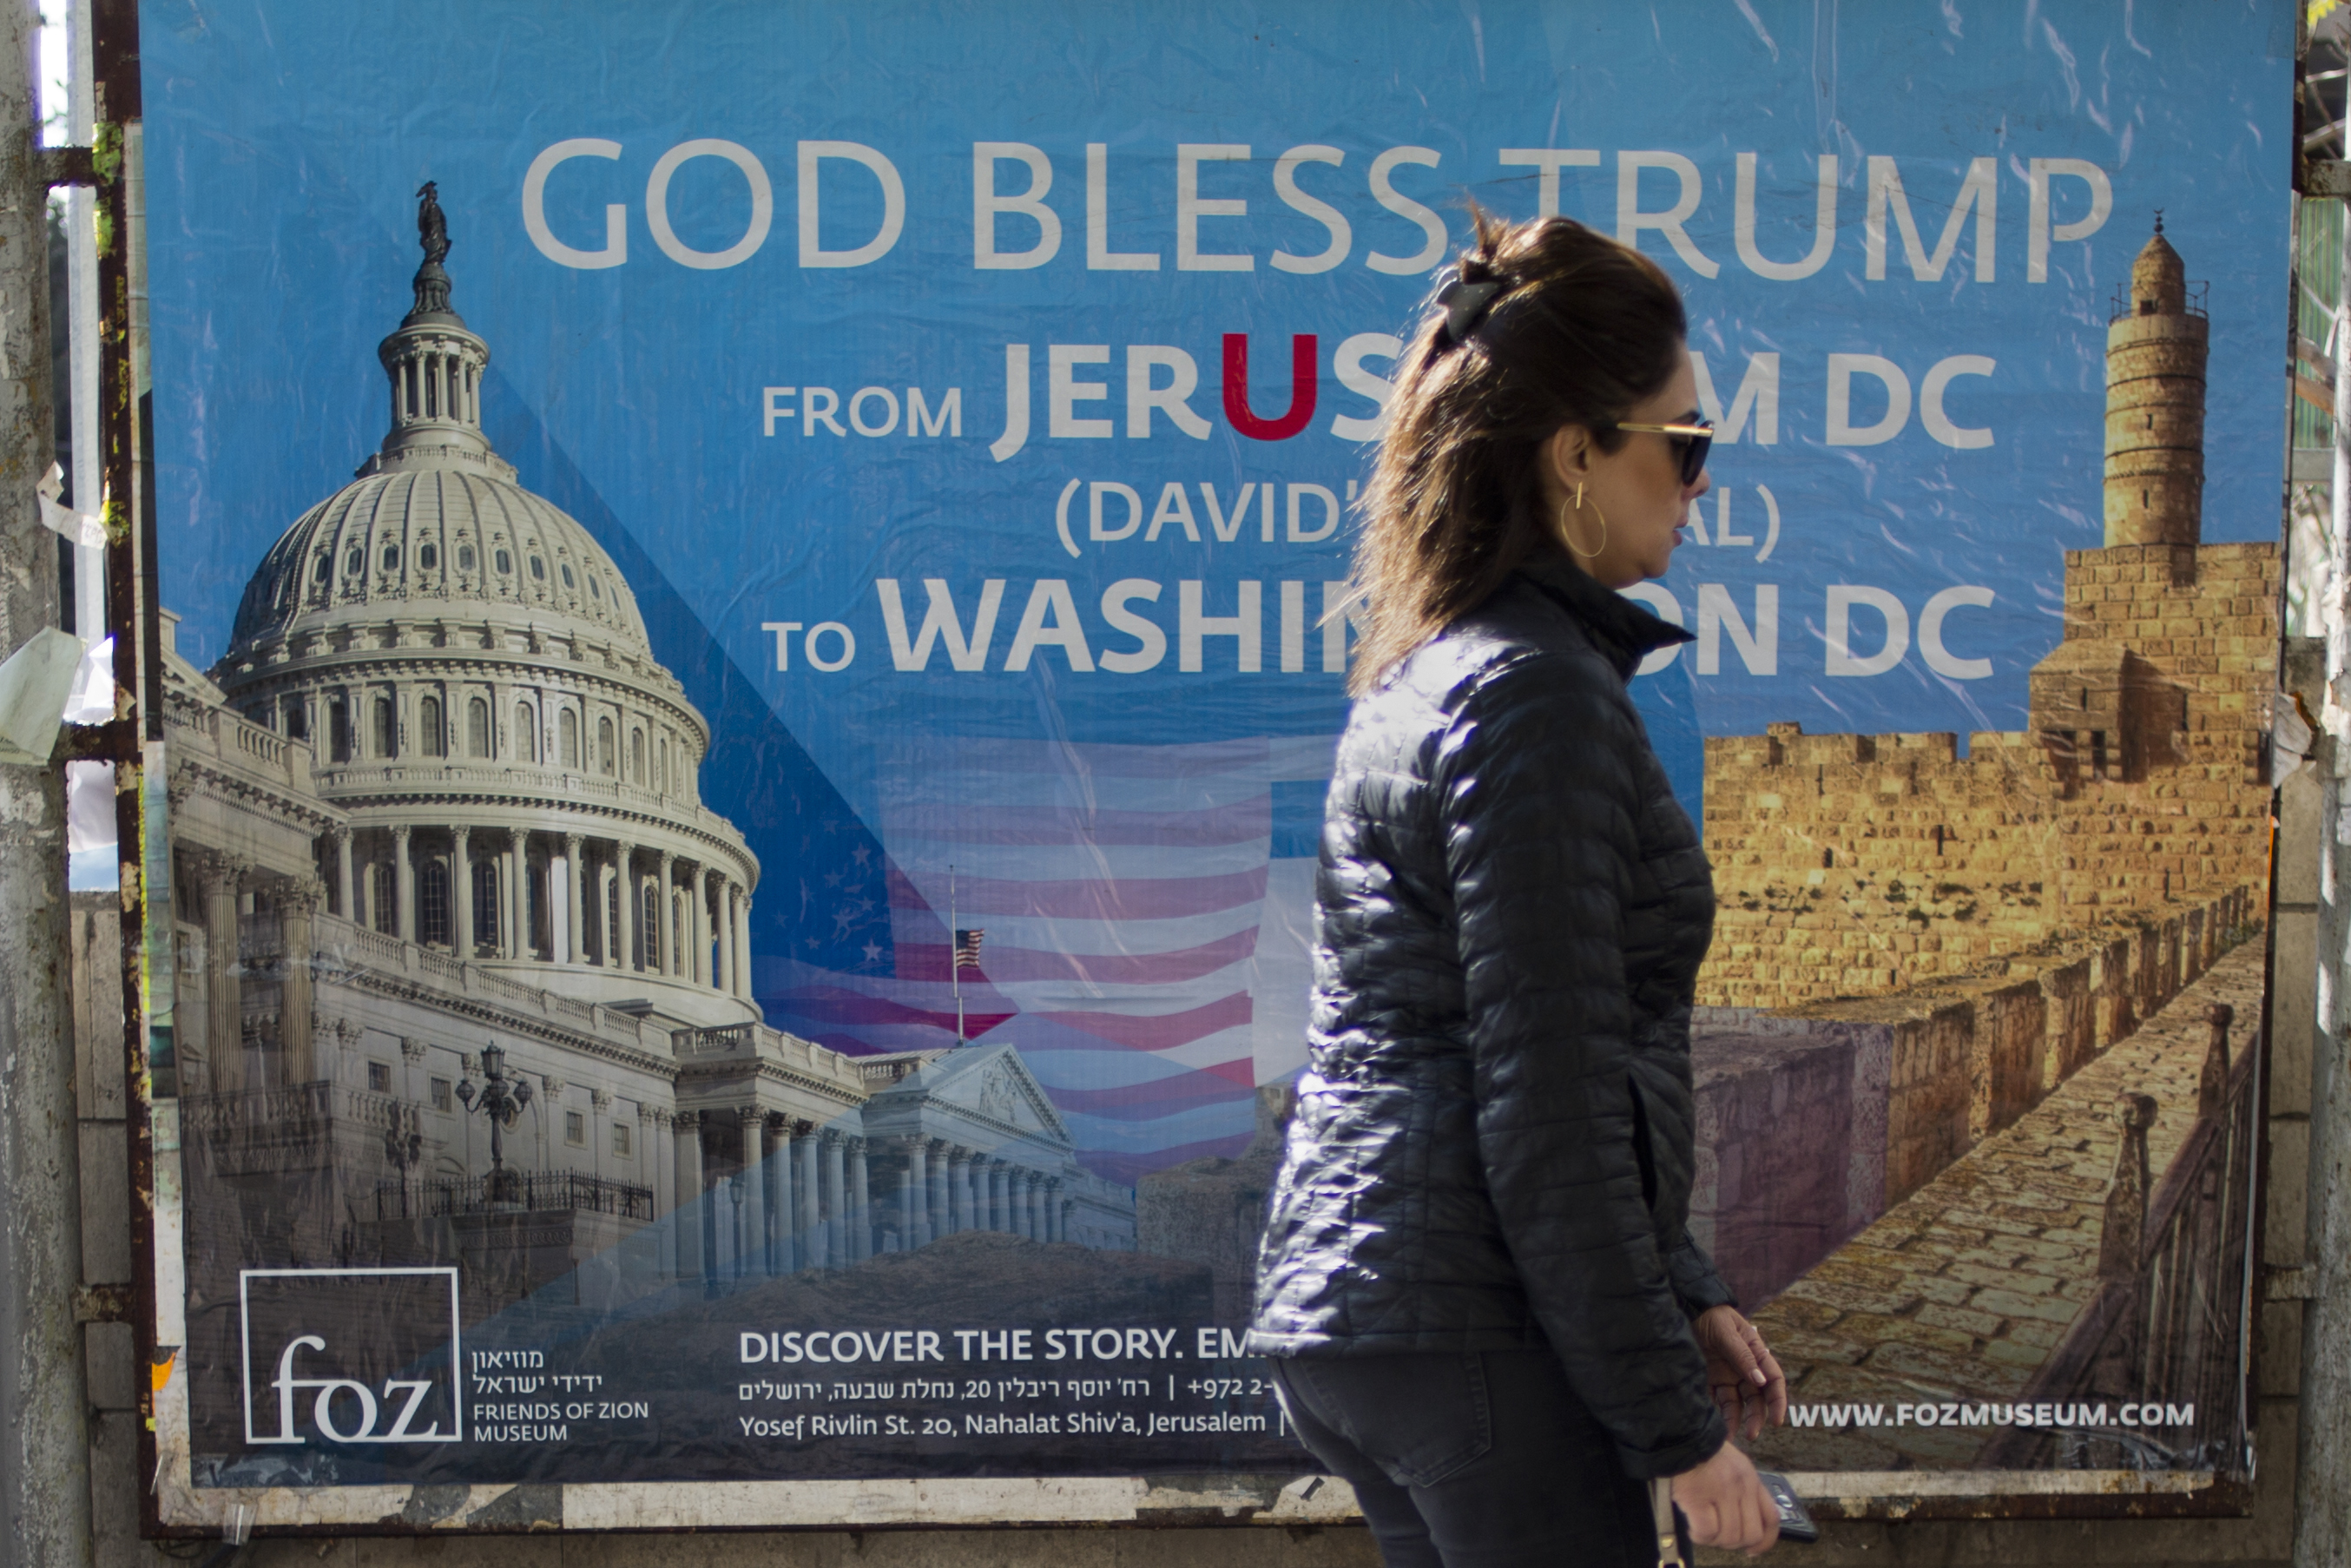 Mark Levin: Hebrew scholars will study Trump's Jerusalem decision 'for the  rest of time' - Washington Times washingtontimes.com Radio host Mark Levin  says ...